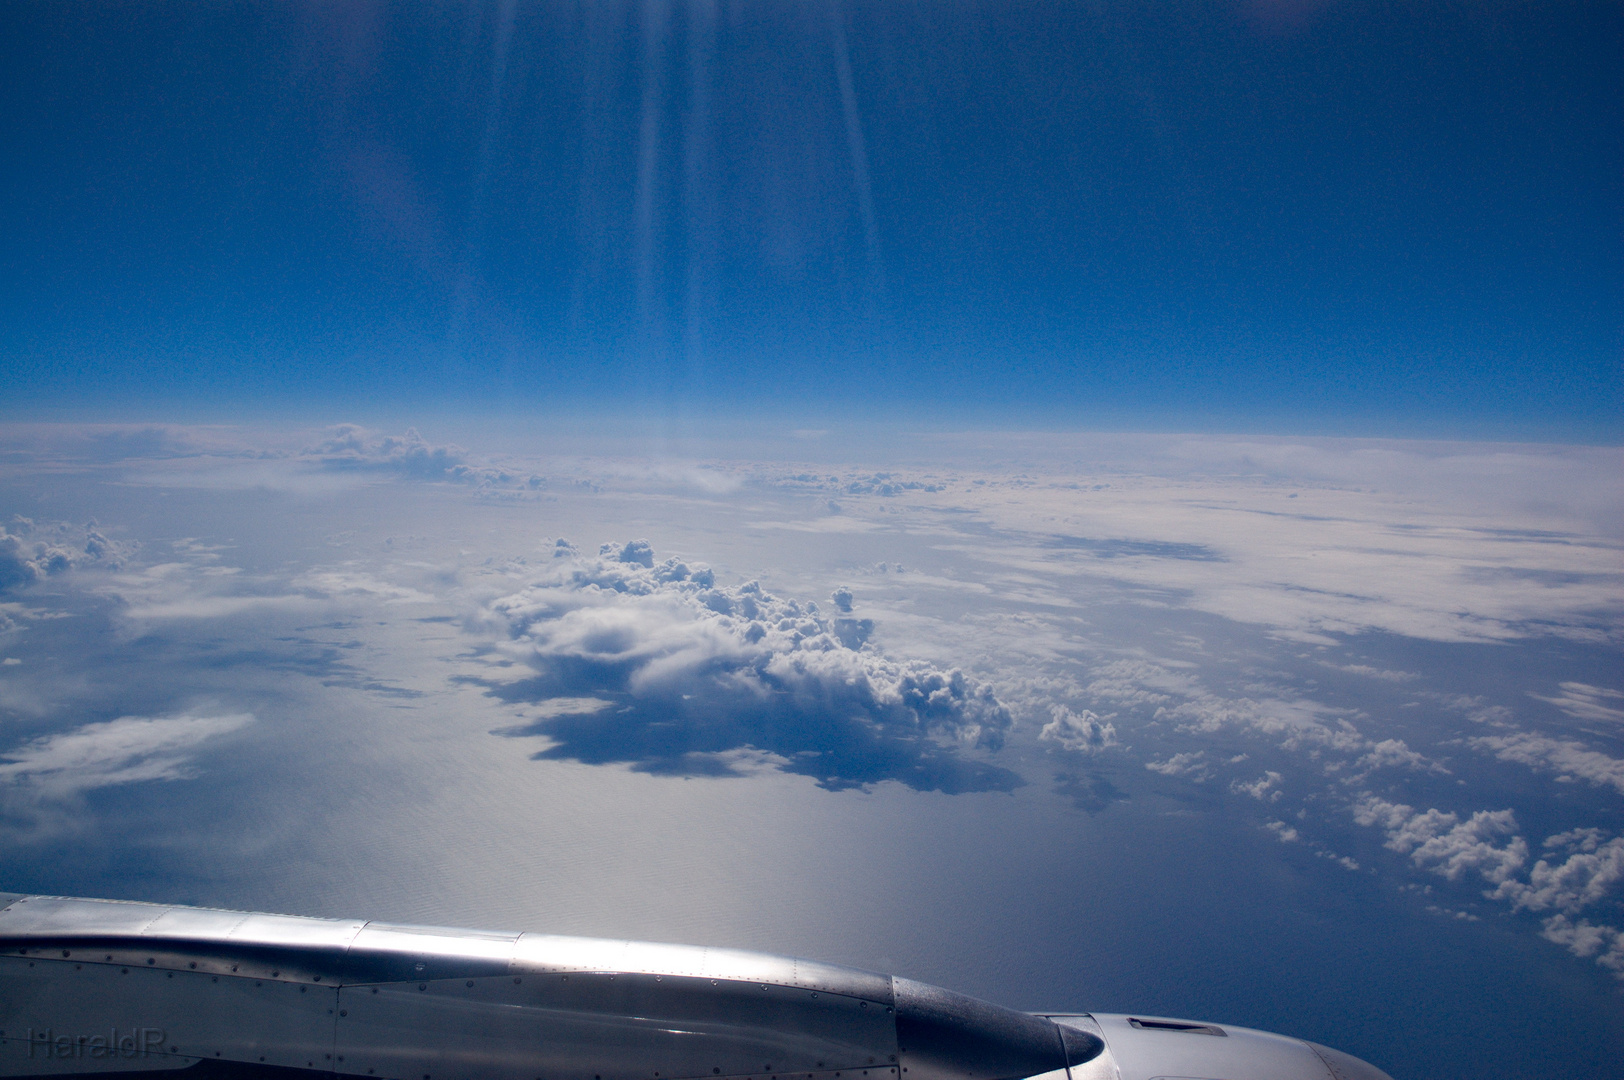 Day 0 - April 2: In the Air - Bay of Biscay